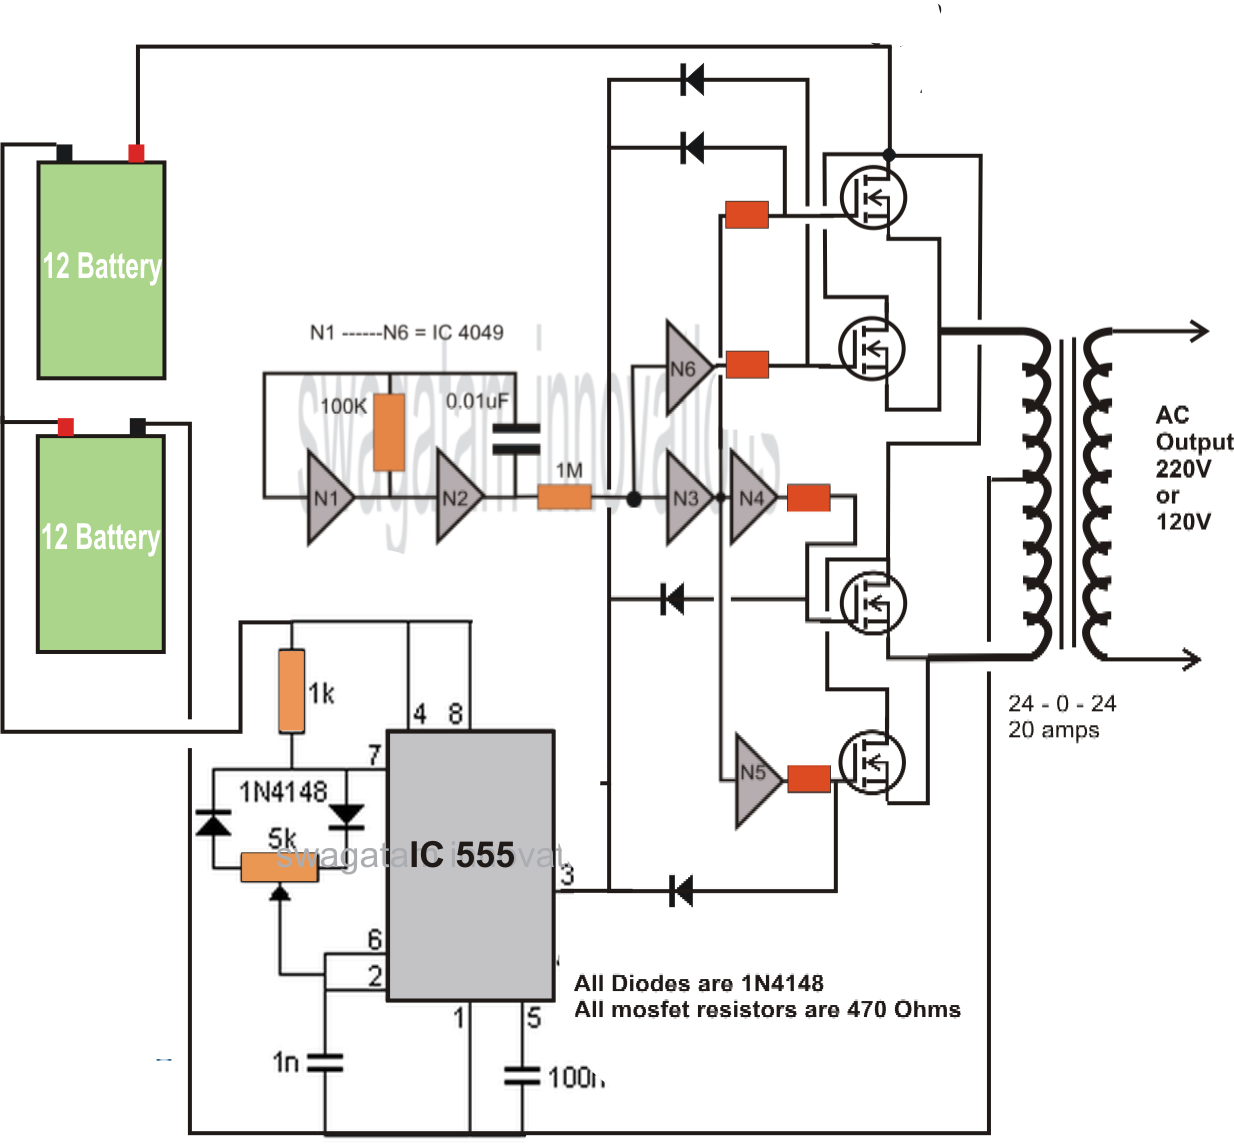 pv inverter wiring diagram vauxhall astra convertible transformerless dc to ac schematic